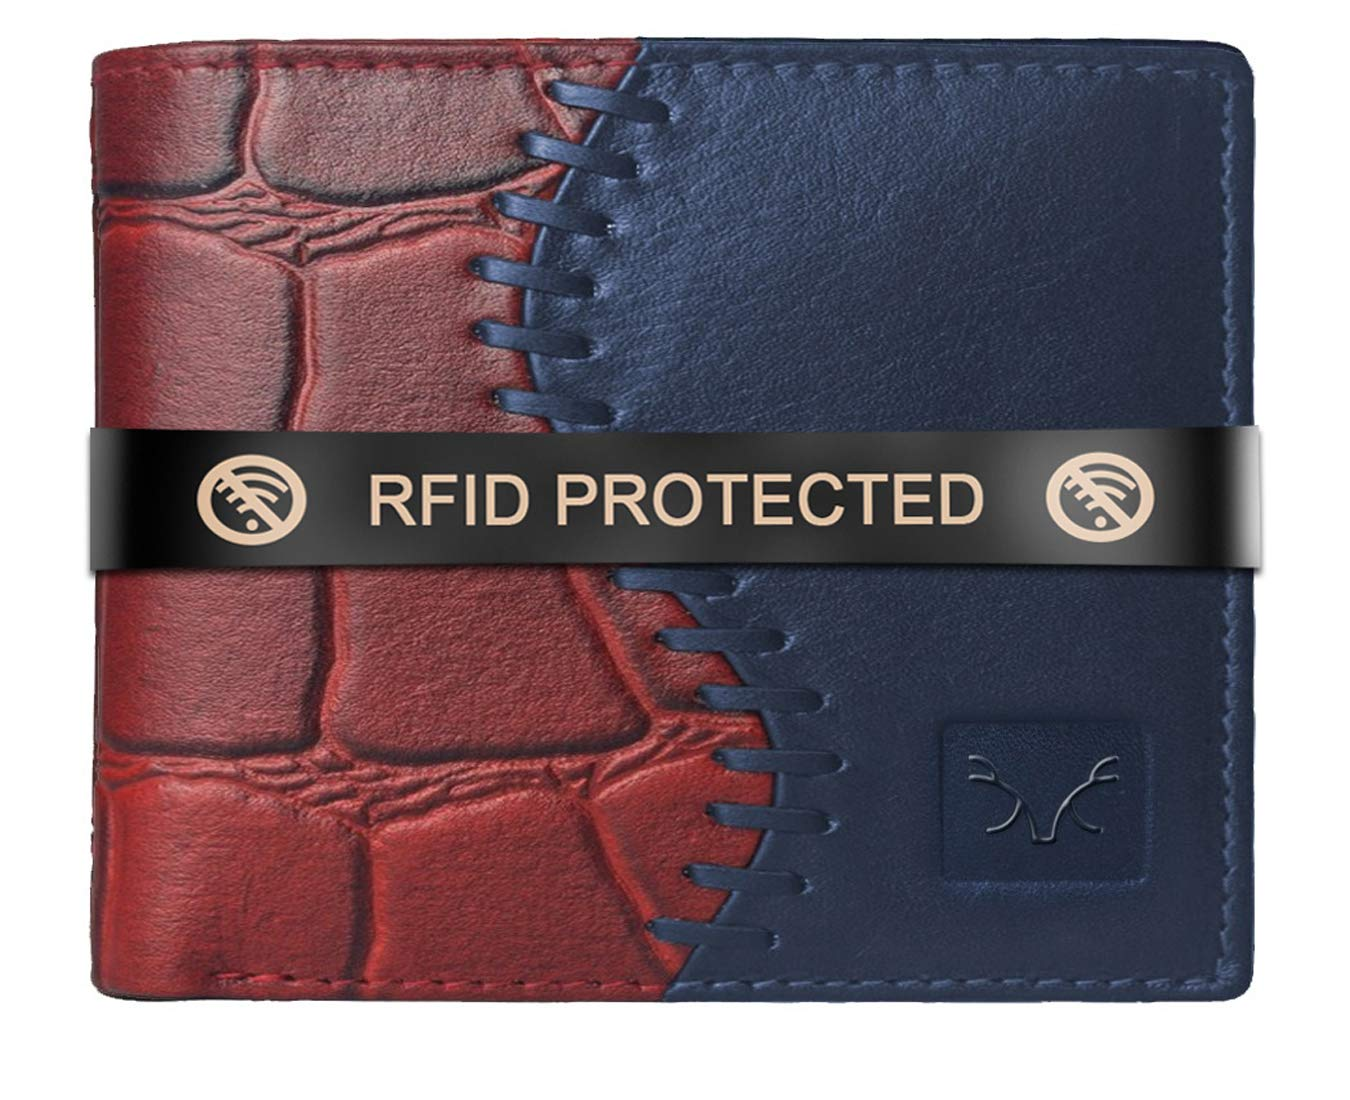 AL FASCINO Stylish RFID Protected Genuine Leather Wallet Mens, Maroon and Blue